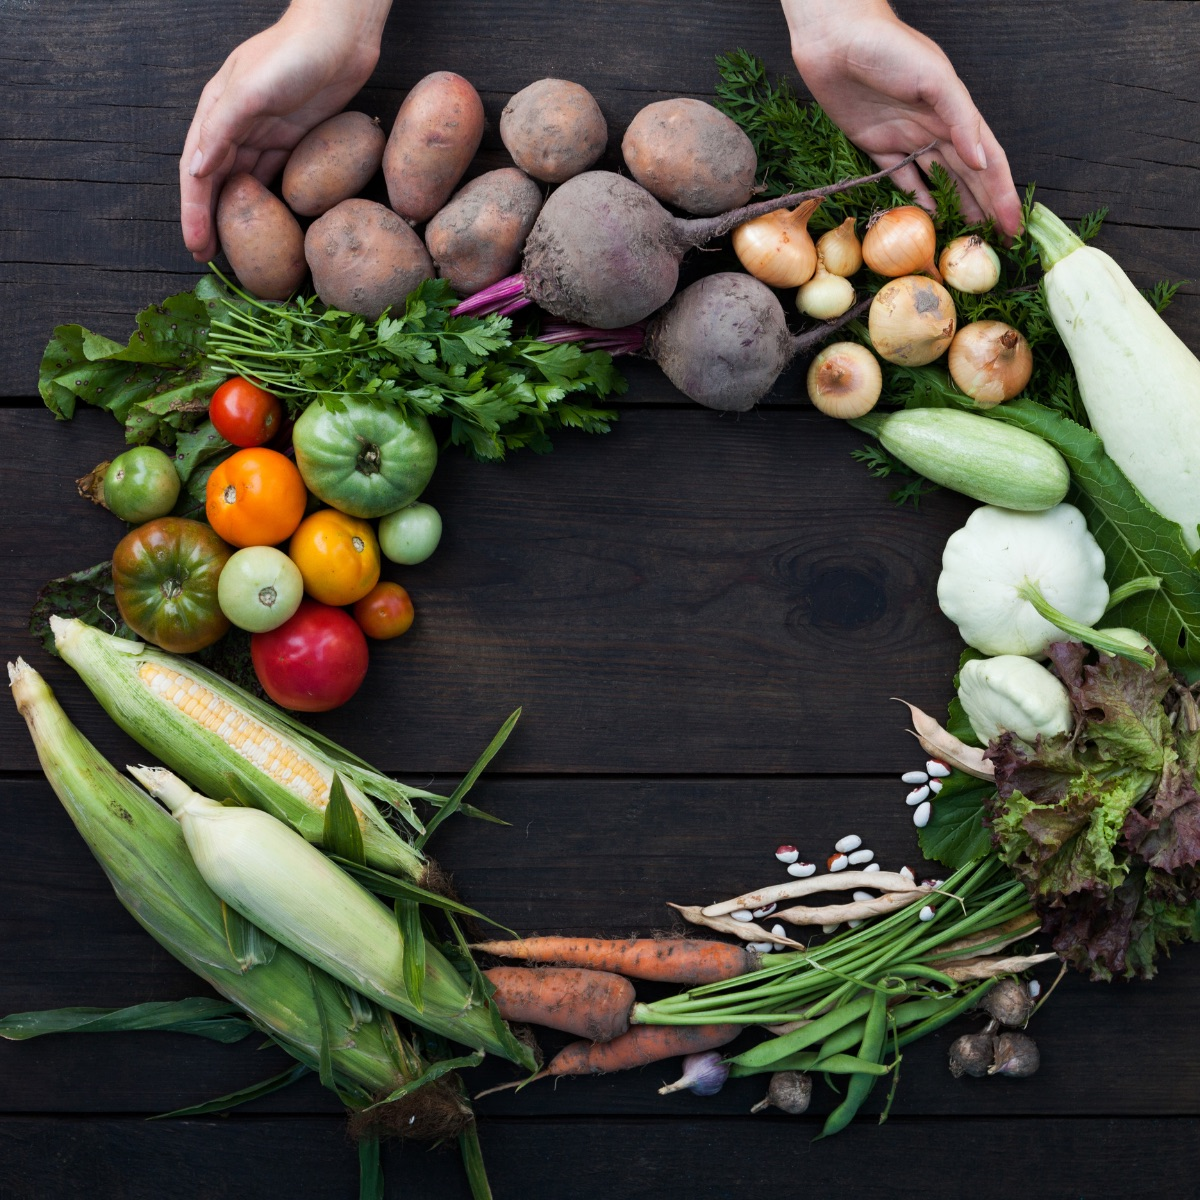 Sustainable Food System